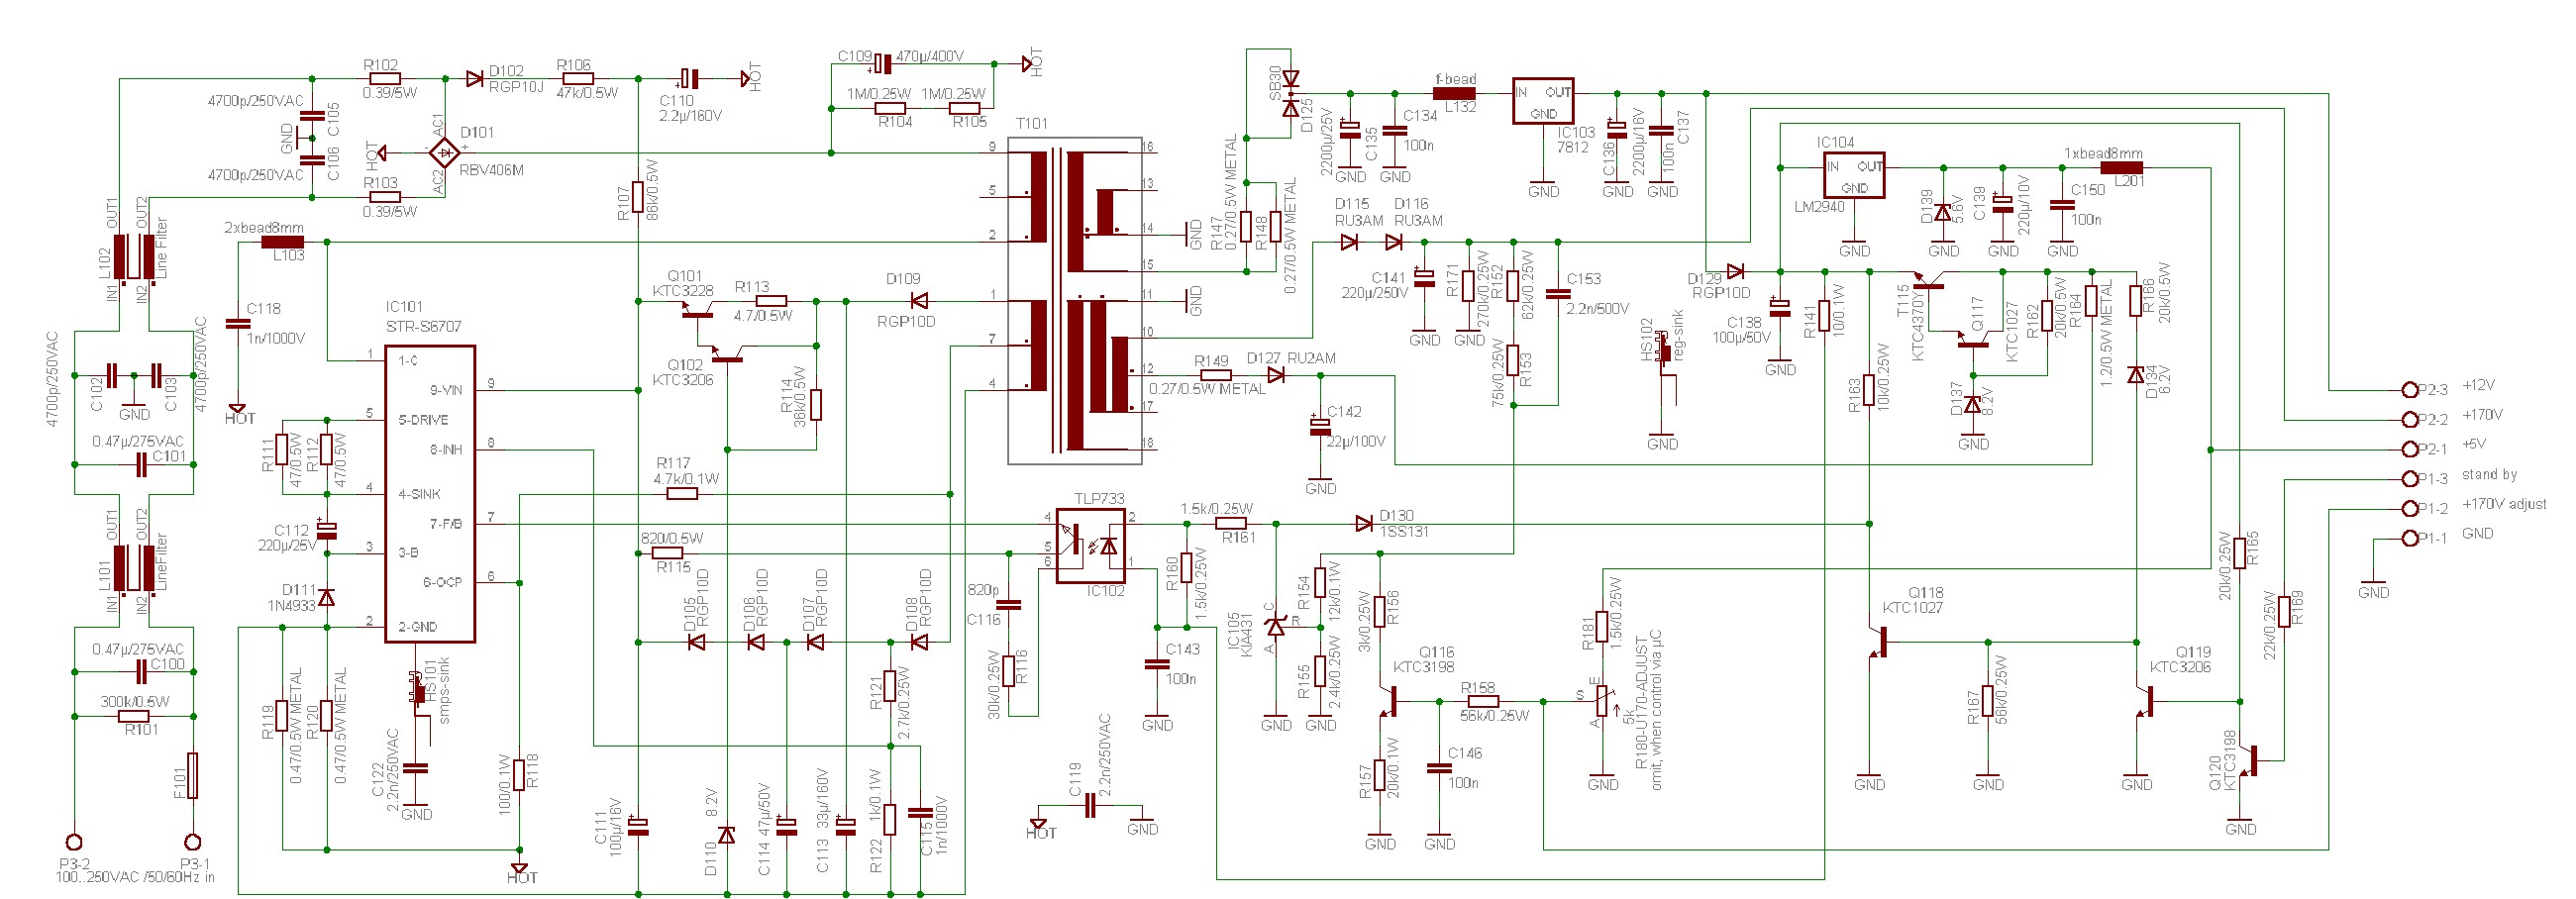 Results Page 171 About 1 Kv Switching Power Supply Searching Car Amplifier Based Tda1562 Cd47 Rodan Nixie Tube Clock